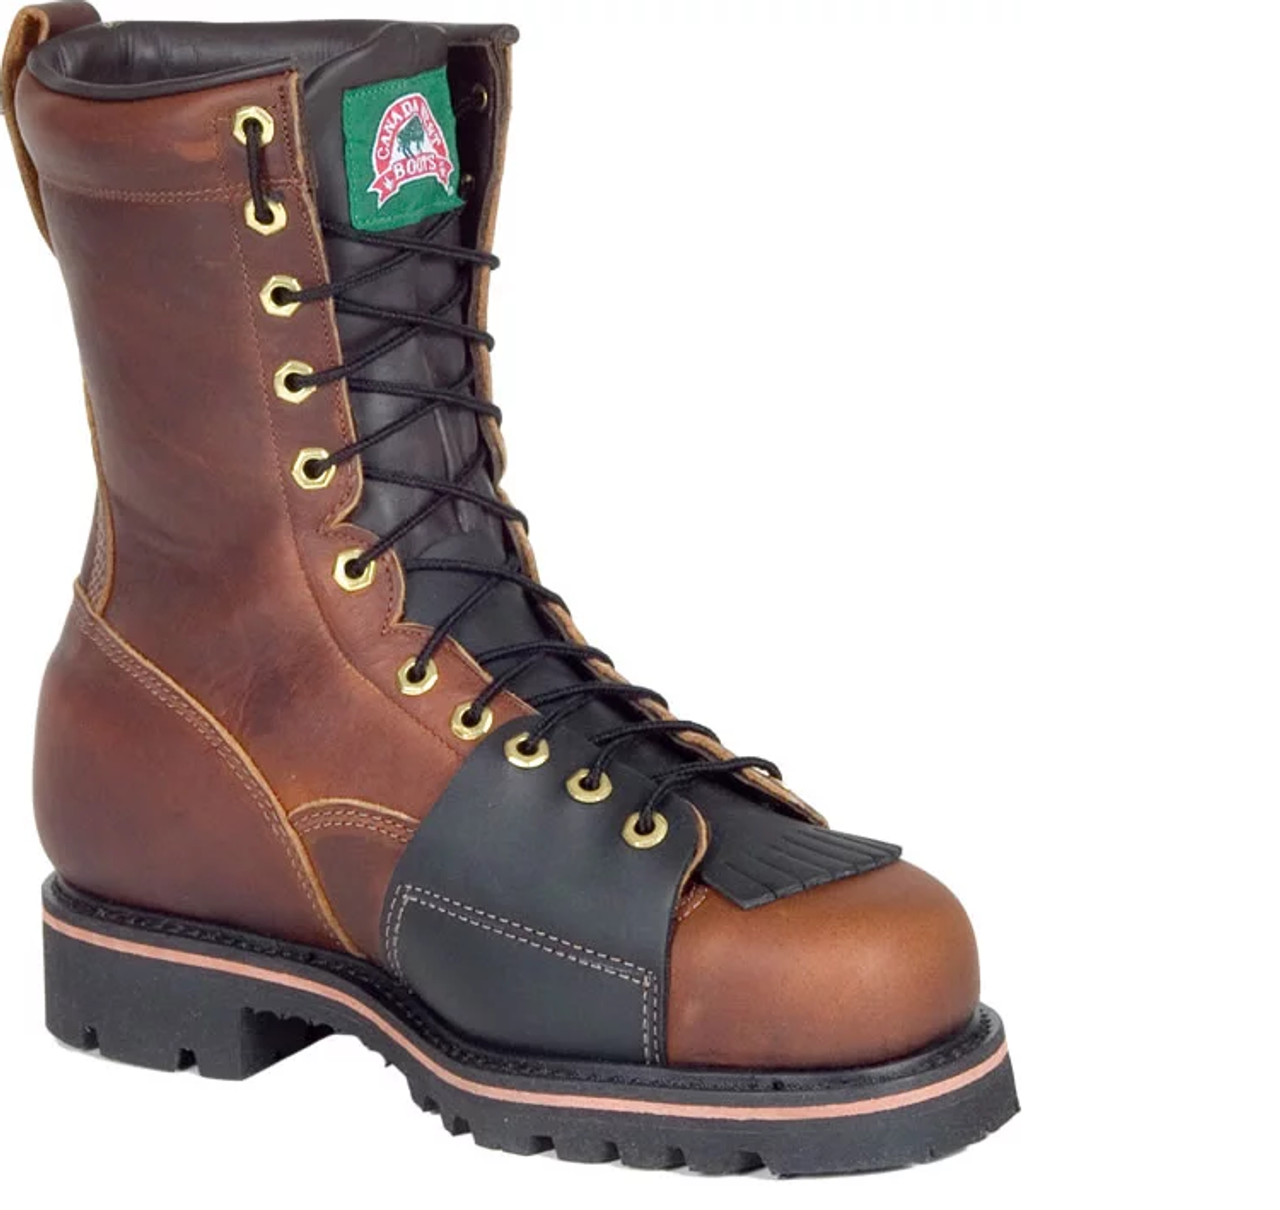 Men S Canada West 34316 Insulated Lineman Csa Safety Boot